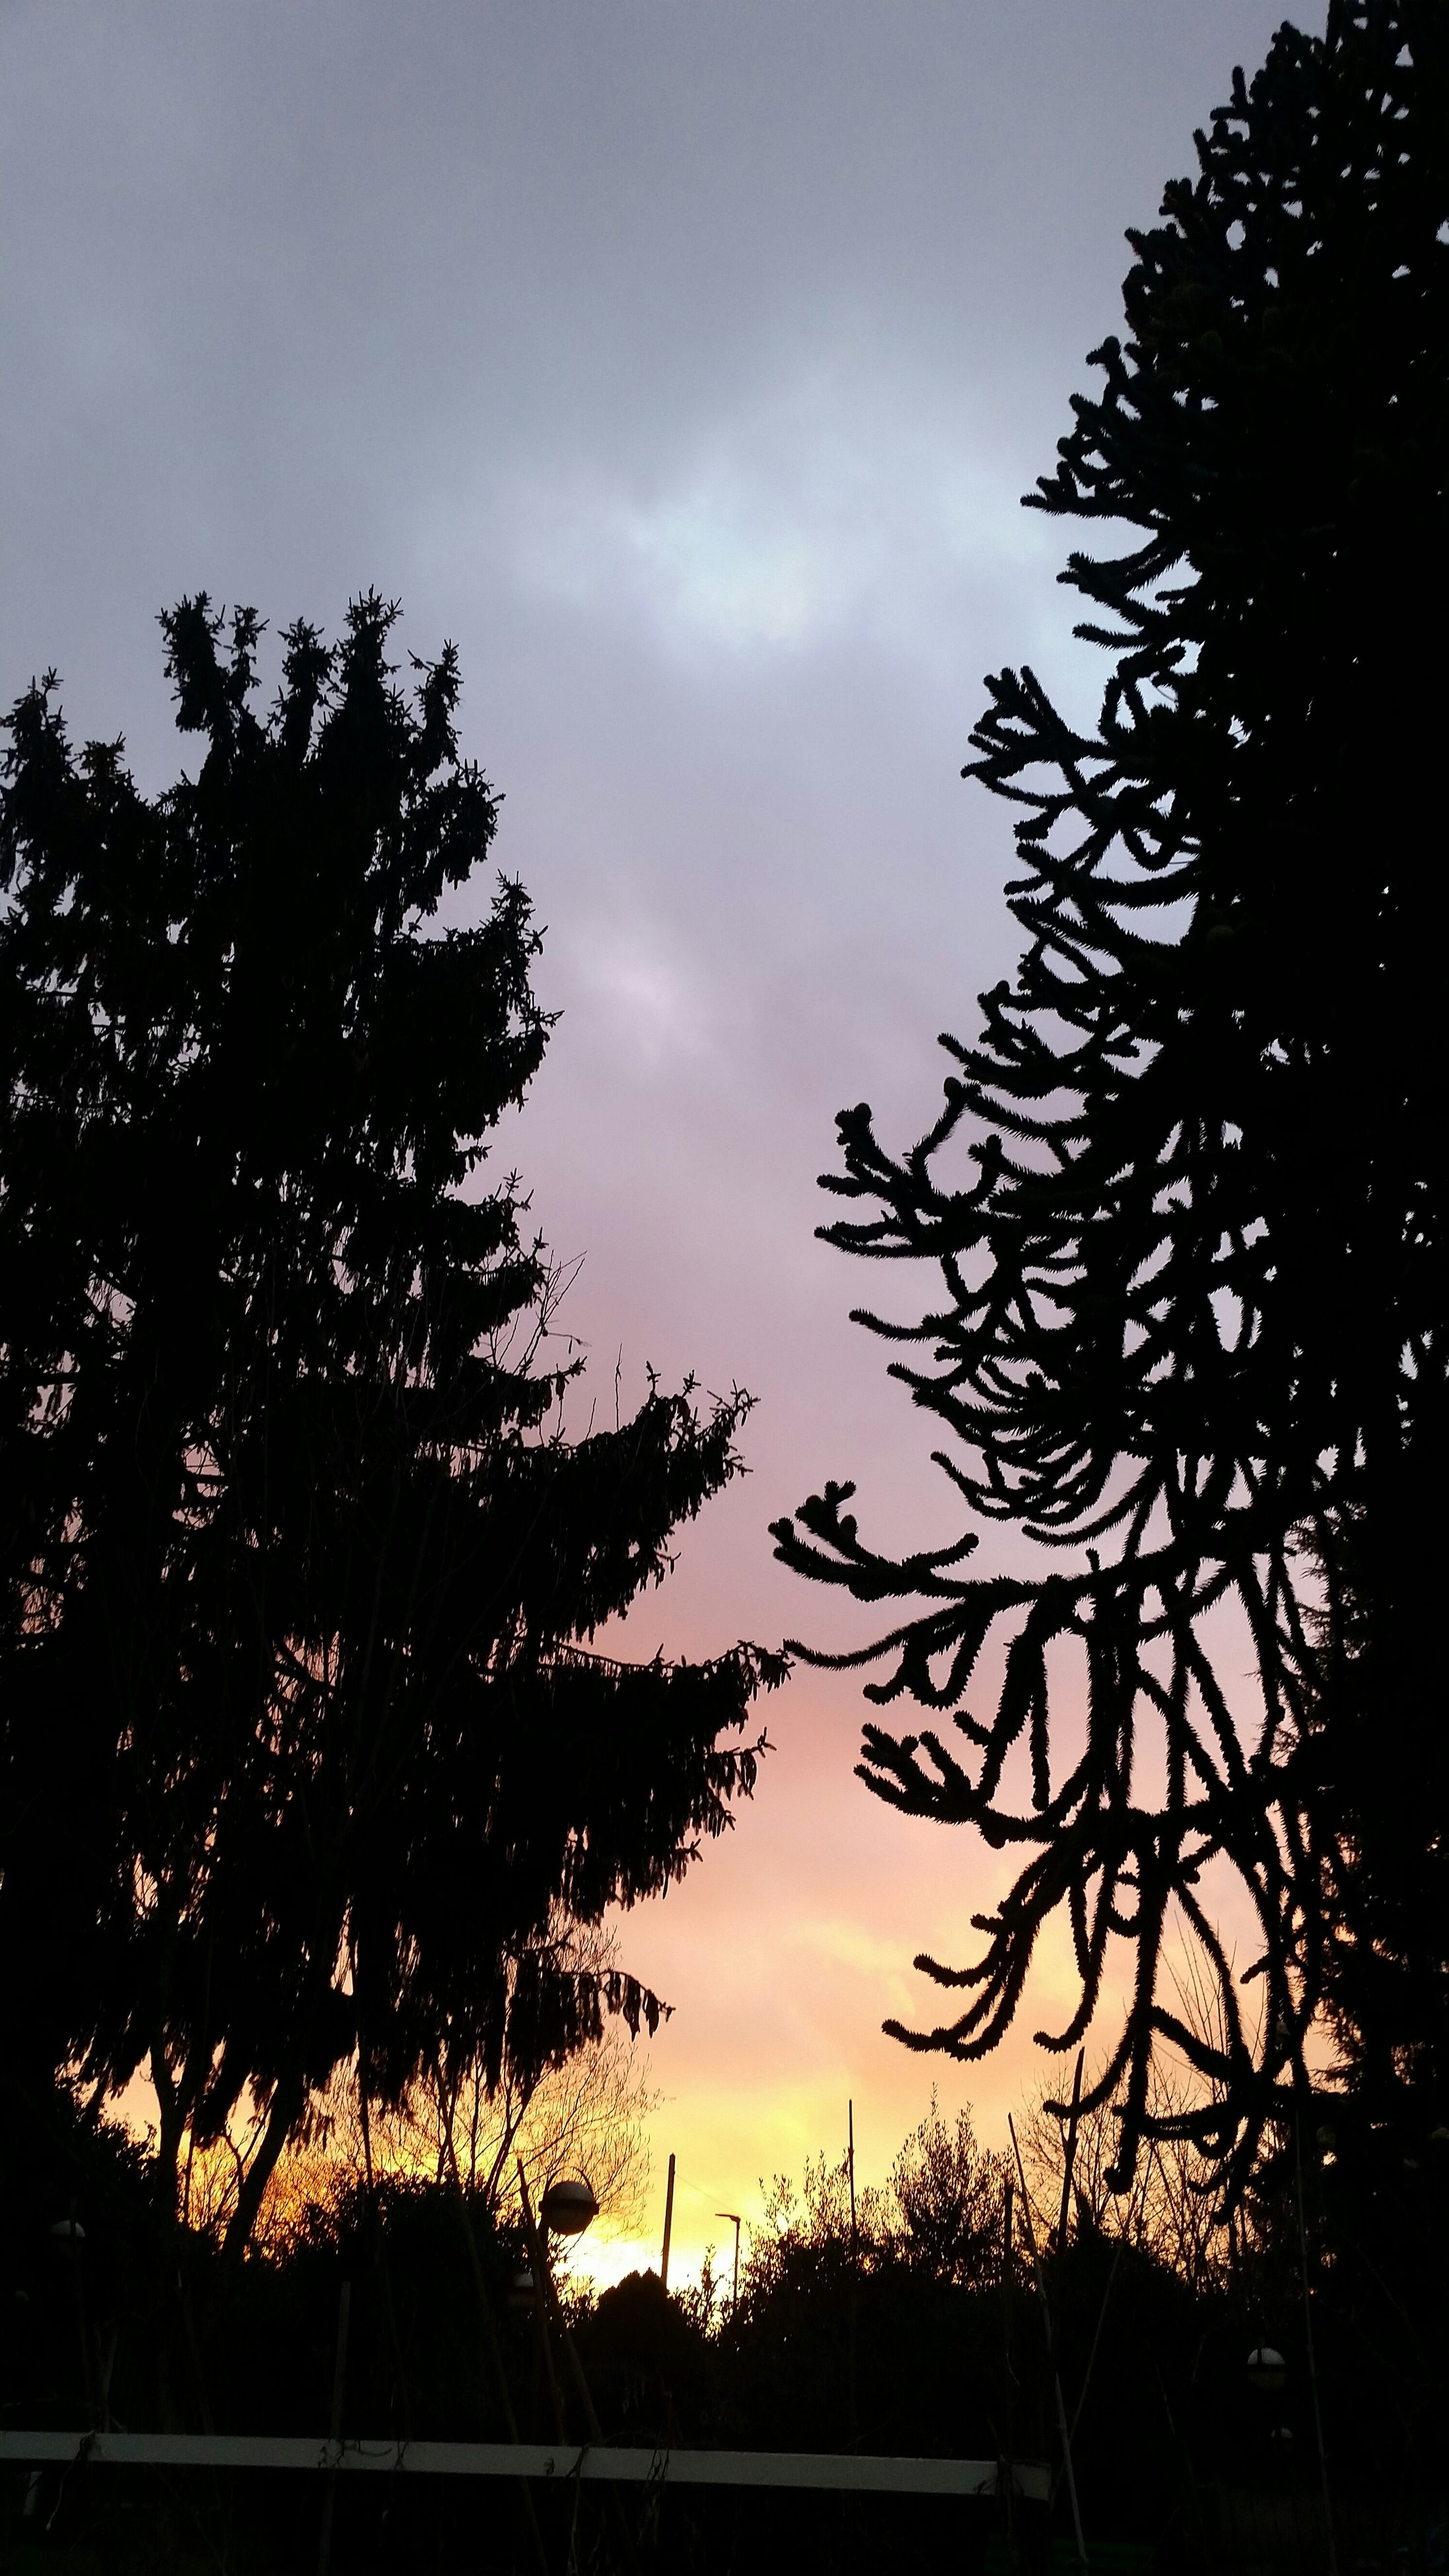 silhouette, tree, sky, sunset, tranquility, beauty in nature, tranquil scene, cloud - sky, scenics, low angle view, nature, branch, growth, cloud, dusk, cloudy, idyllic, outline, outdoors, dark